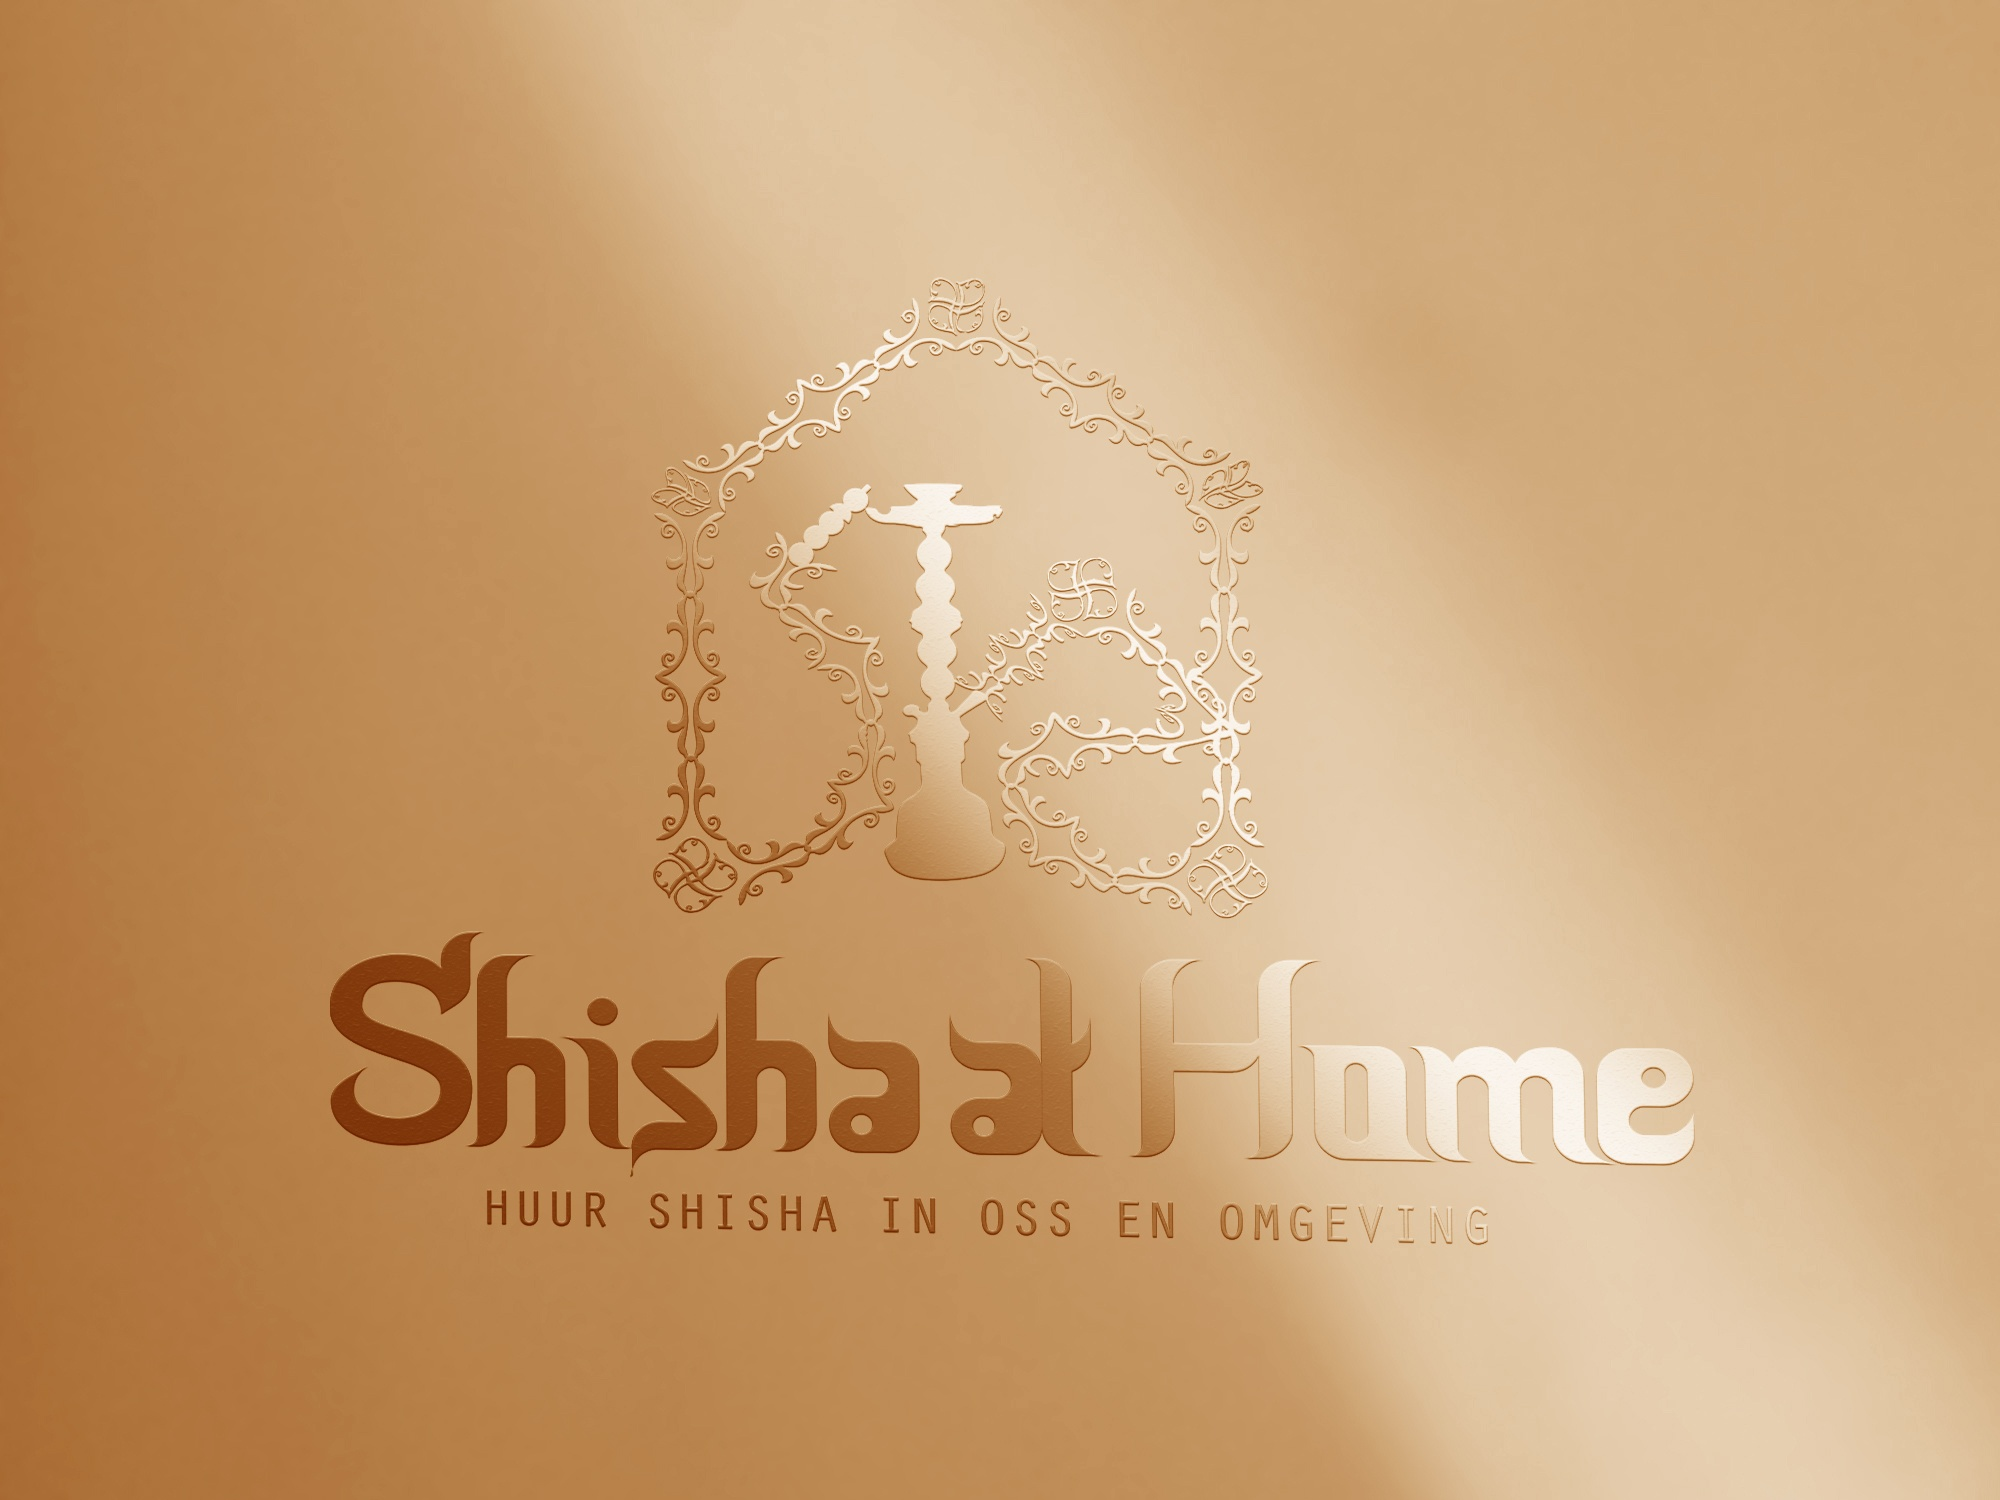 shisha-at-home-editamedia3